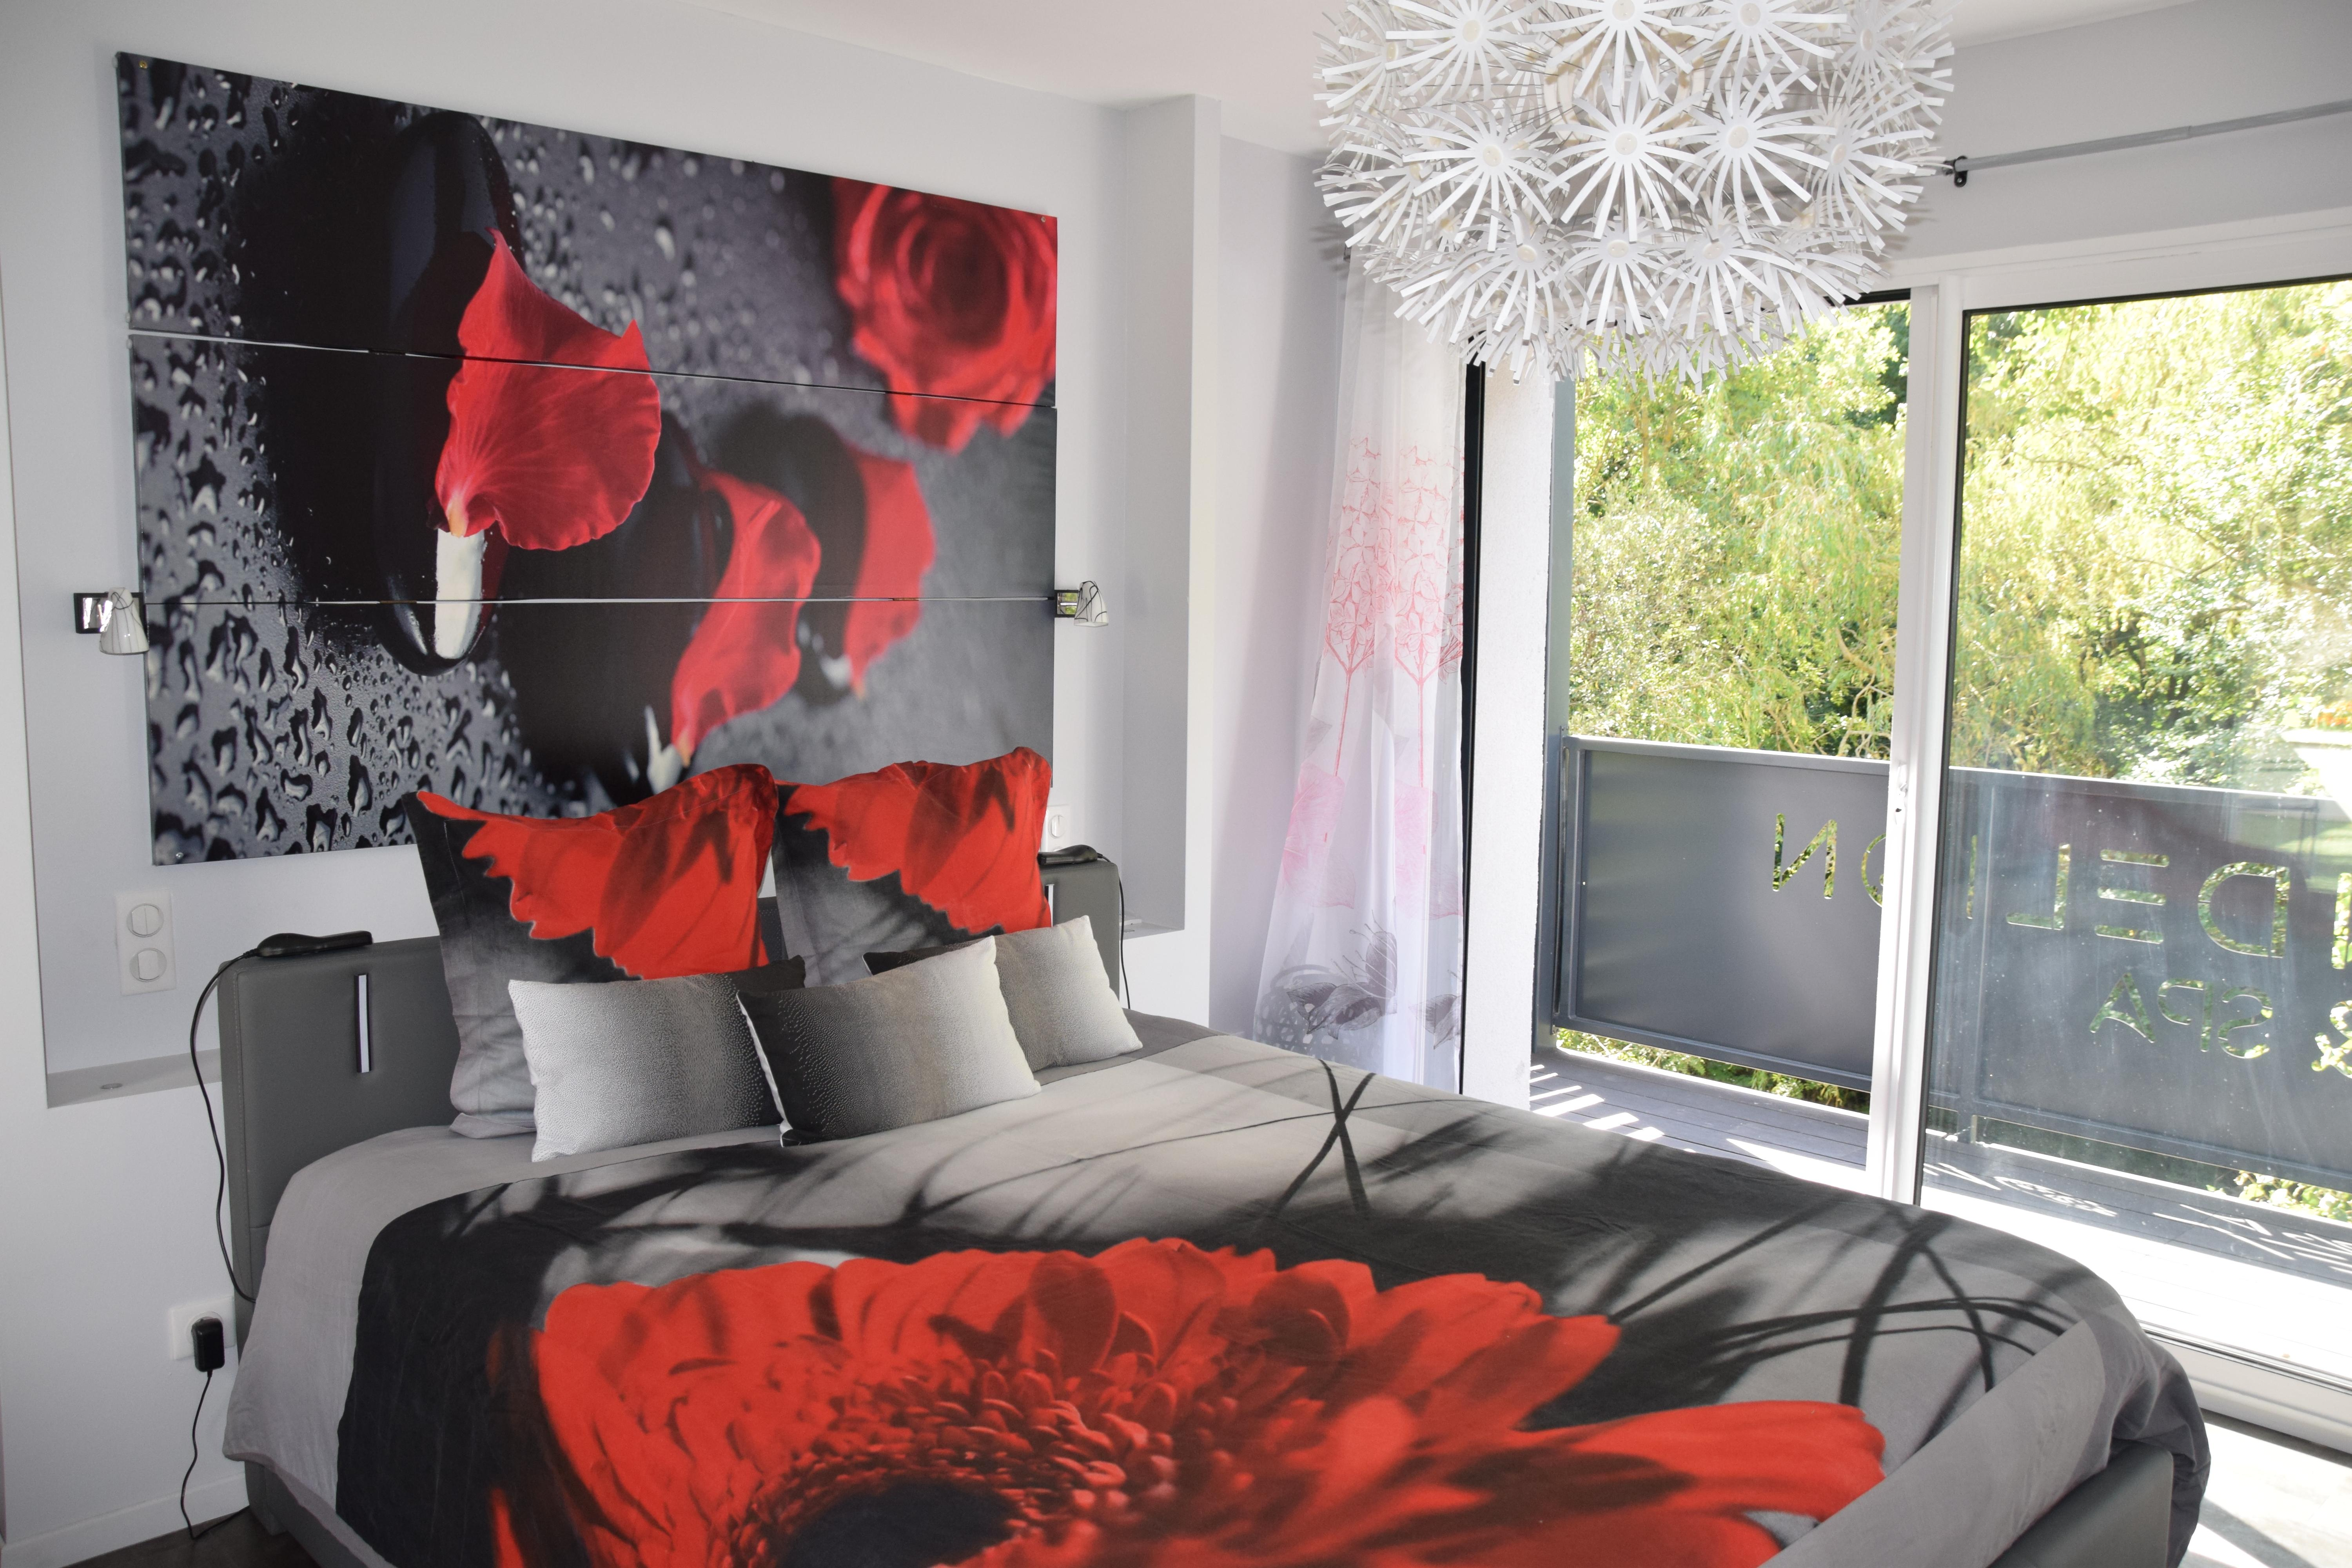 modern grey and red room pebble luxury architect villa for rent Dandelion nature design spa group cottage Gorges of the Tarn Millau Aveyron Lozere Occitania